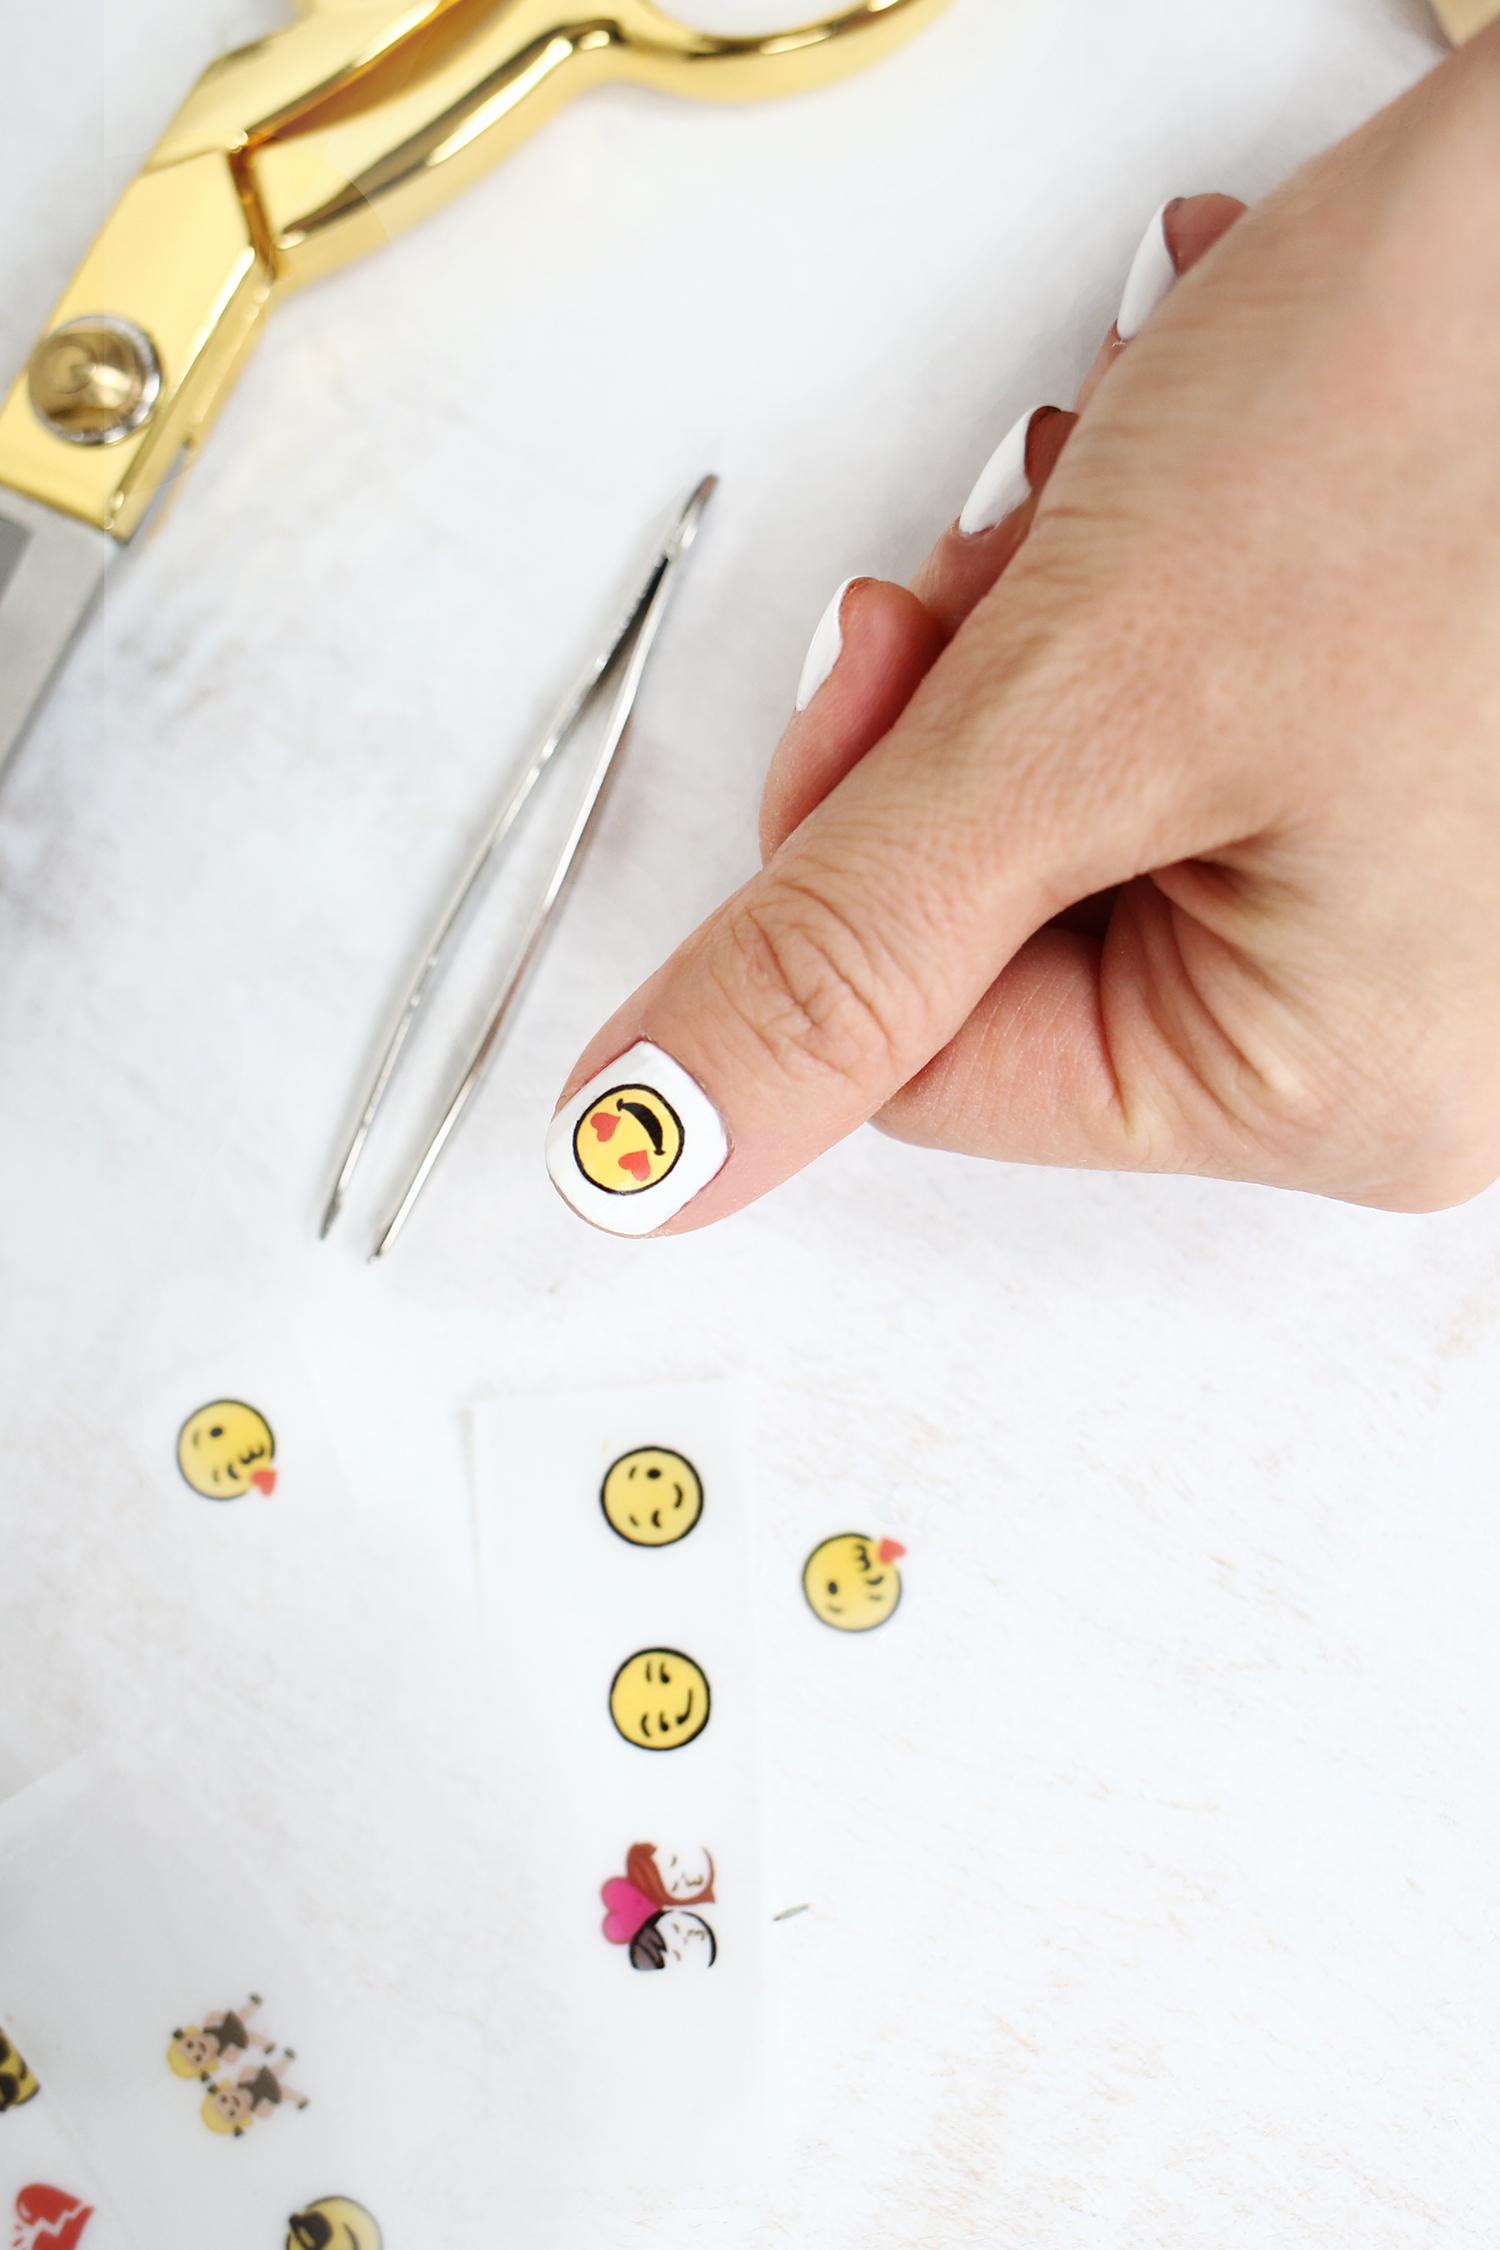 Emoji nail decal DIY